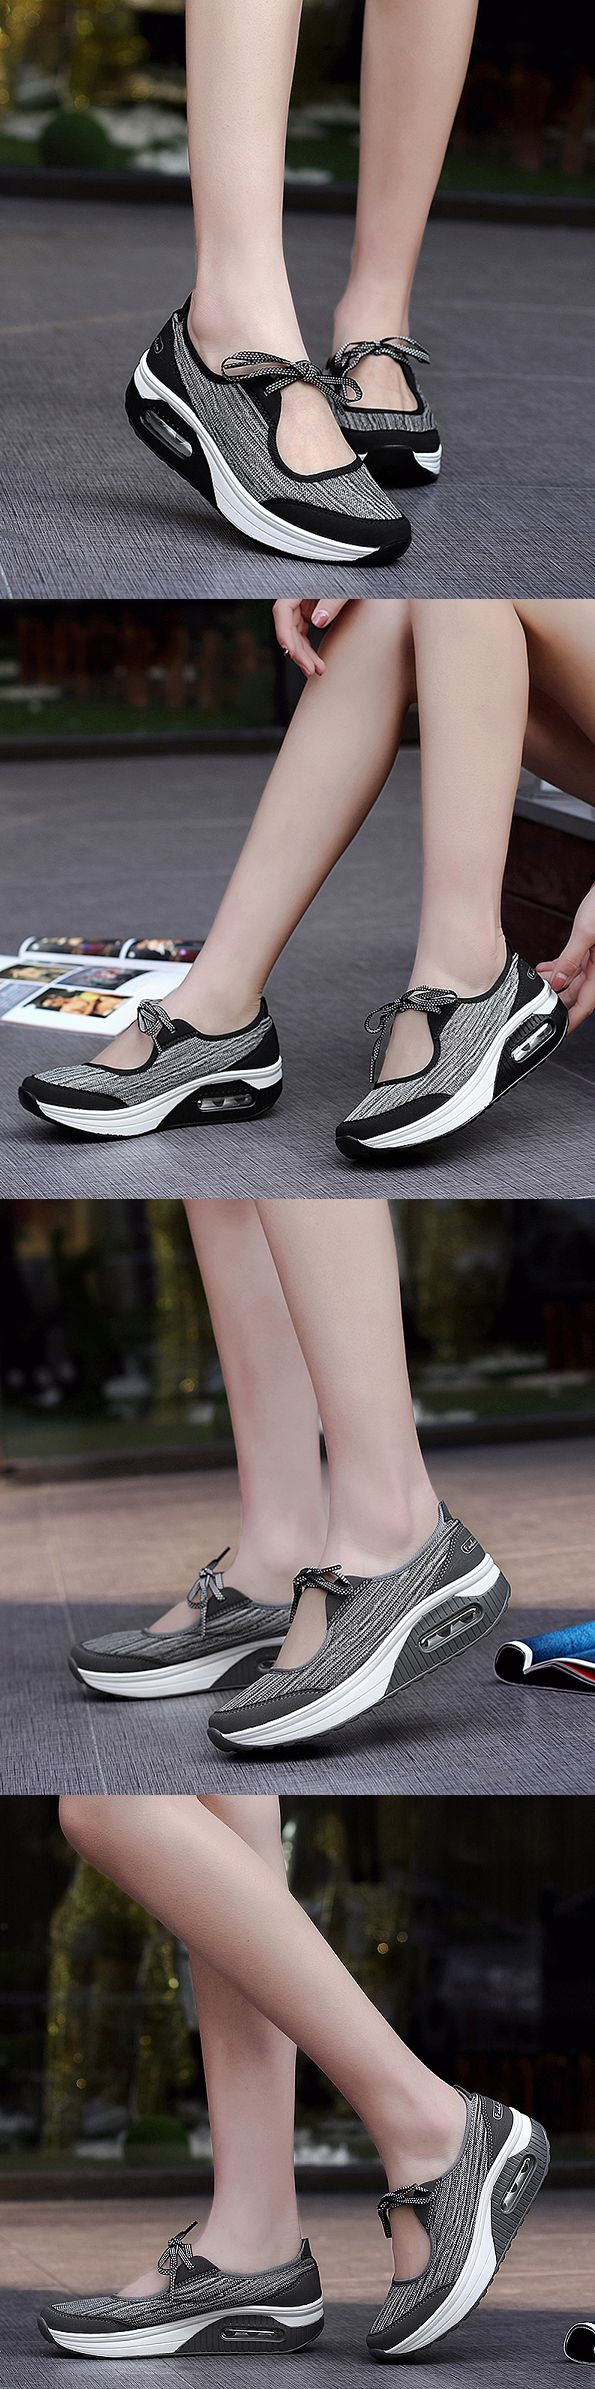 Mesh Rocker Sole Platform Lace Up Sport Casual Shoes